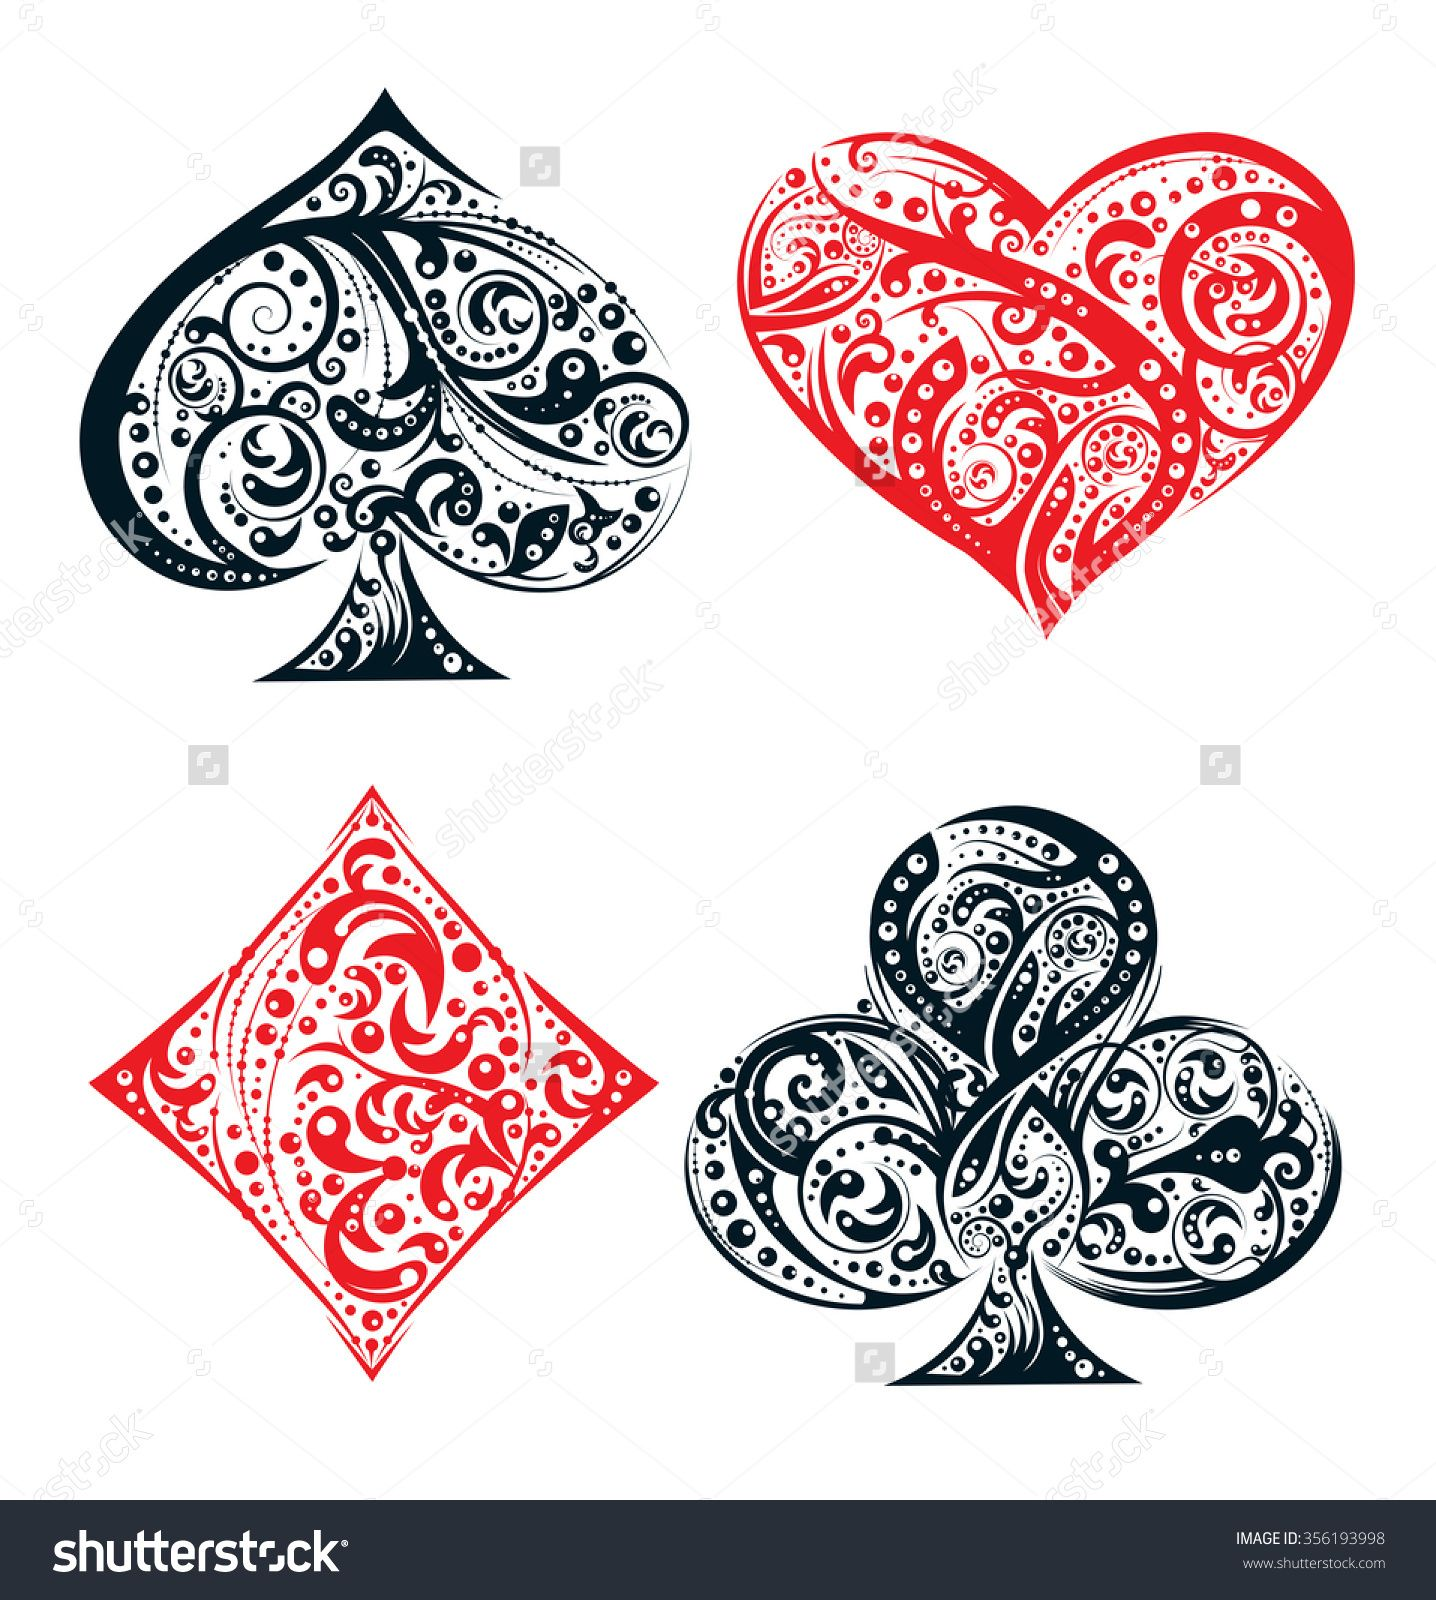 Stock vector set of four vector playing card suit symbols made by set of four vector playing card suit symbols made by floral elements vintage stylized illustration in black and red on white background biocorpaavc